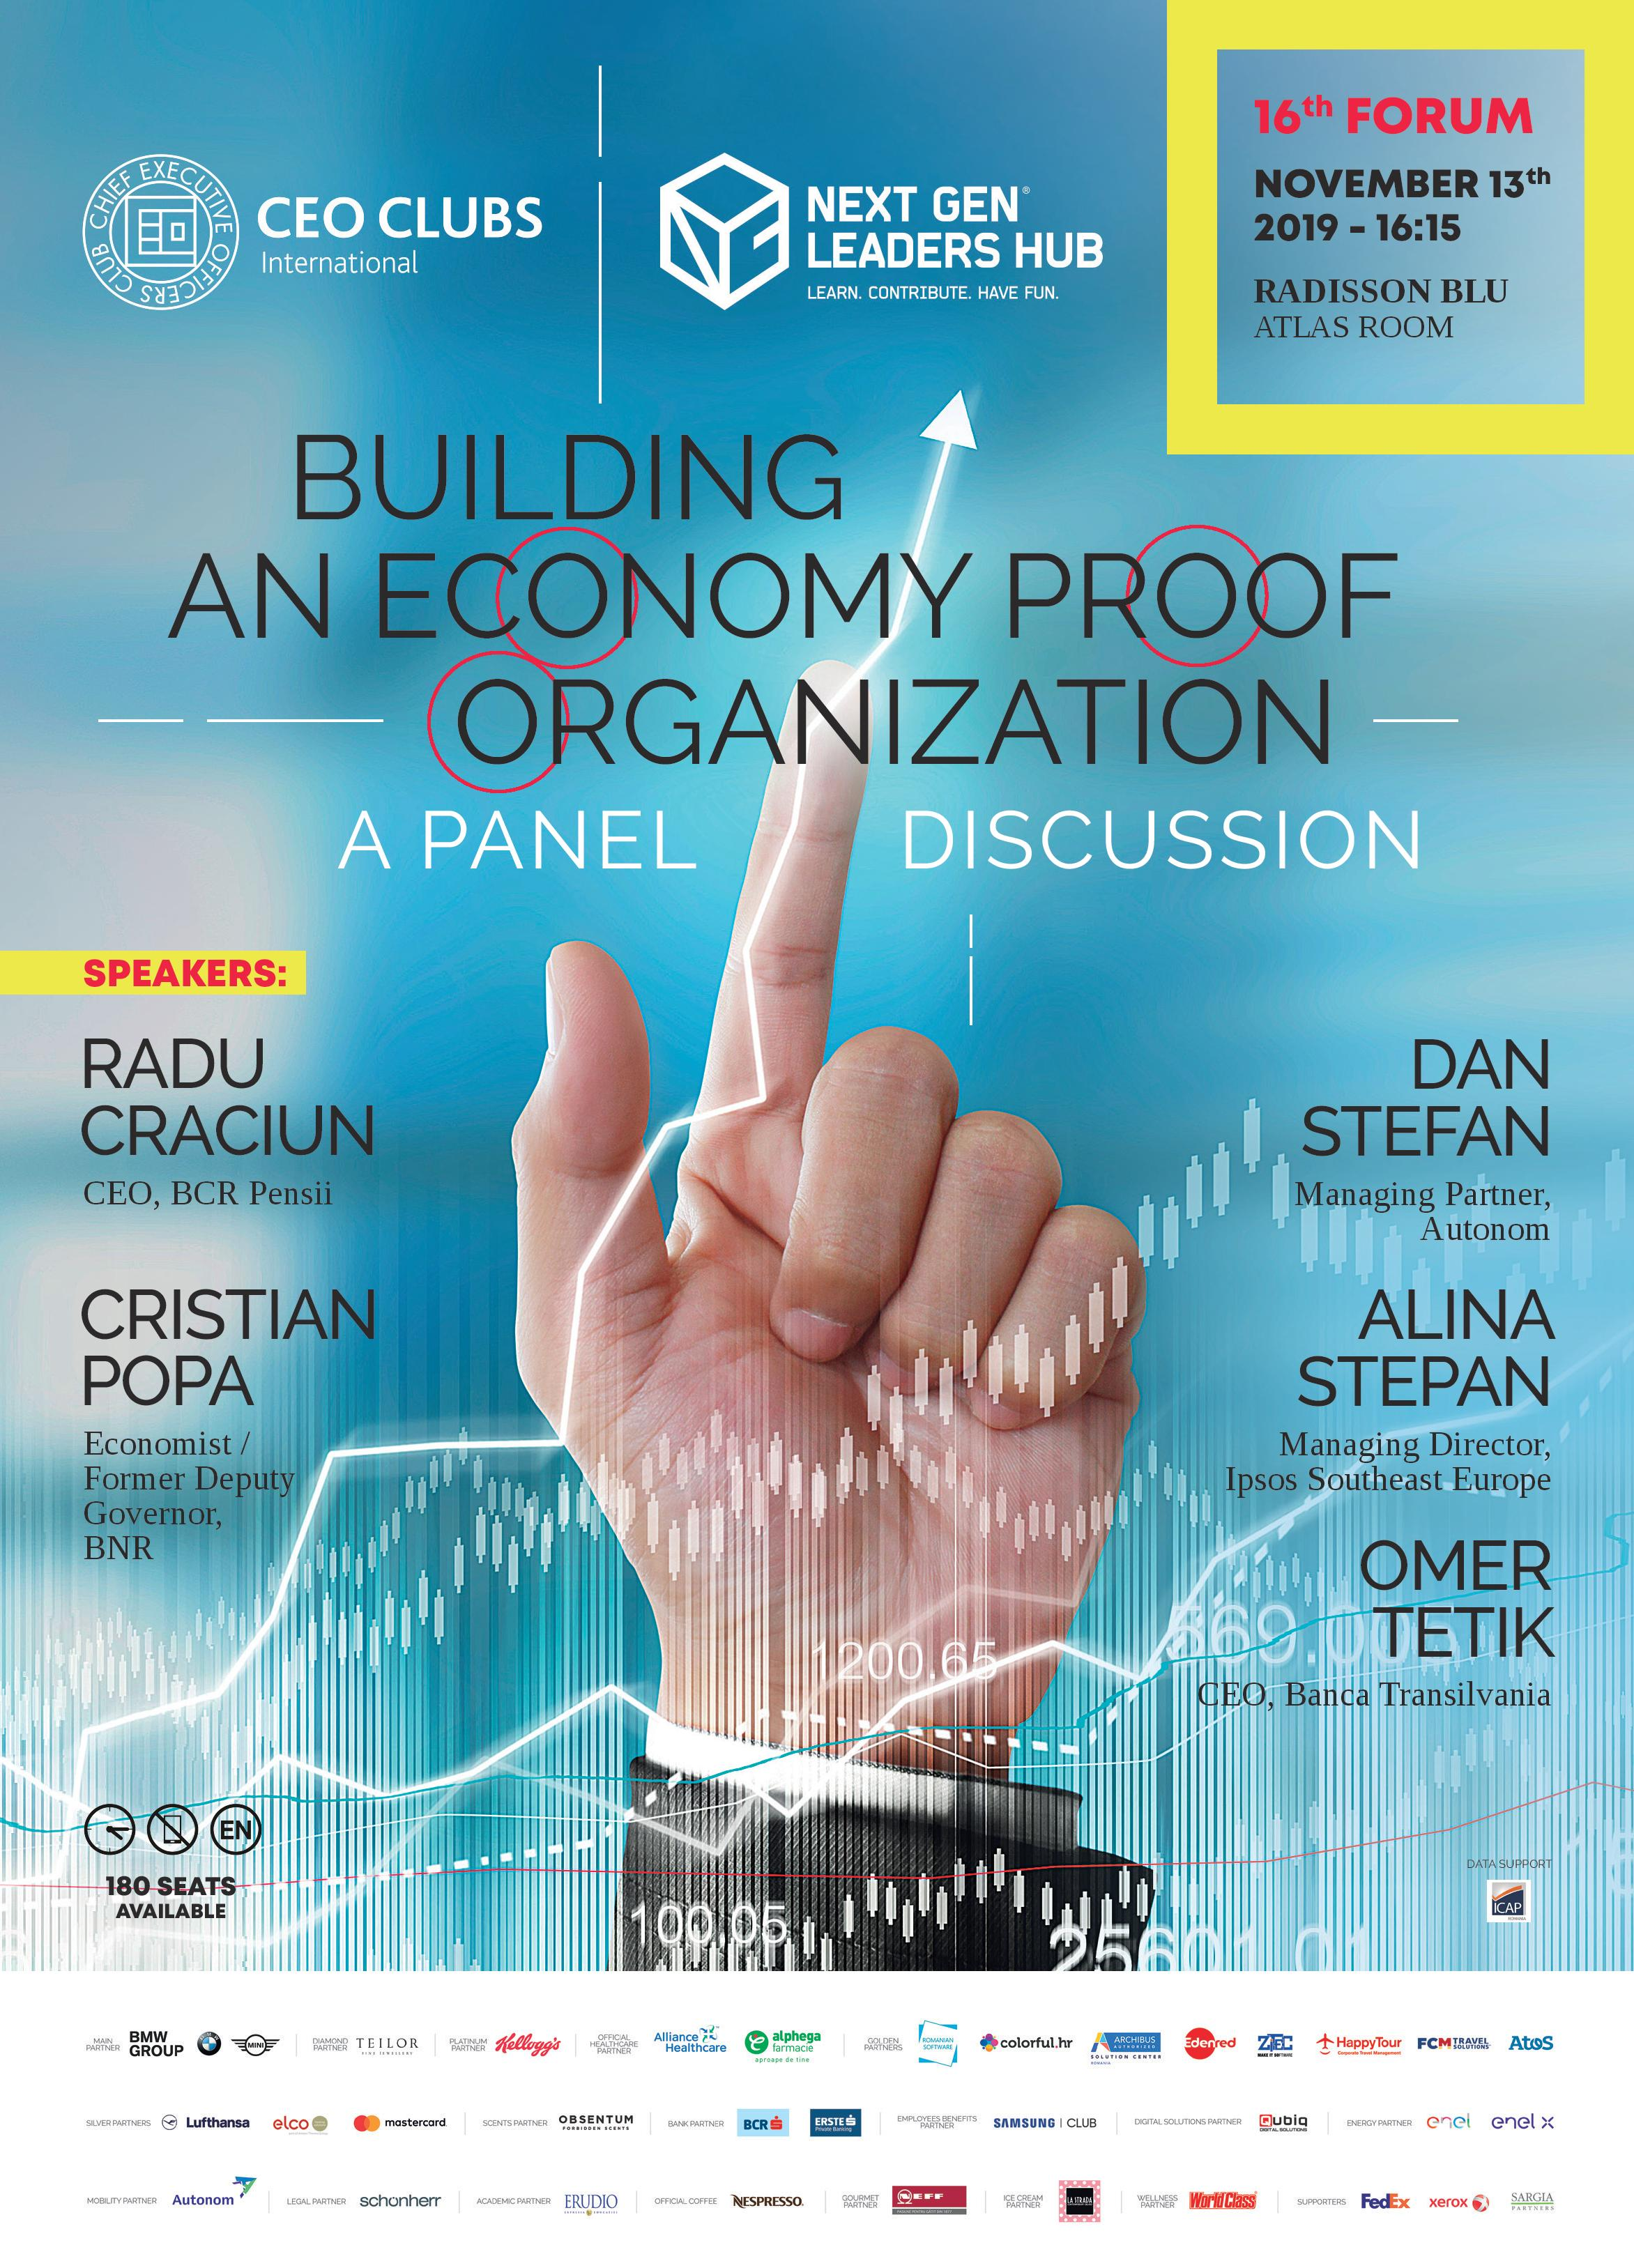 16th Forum: Building an Economy Proof Organization – A Panel Discussion